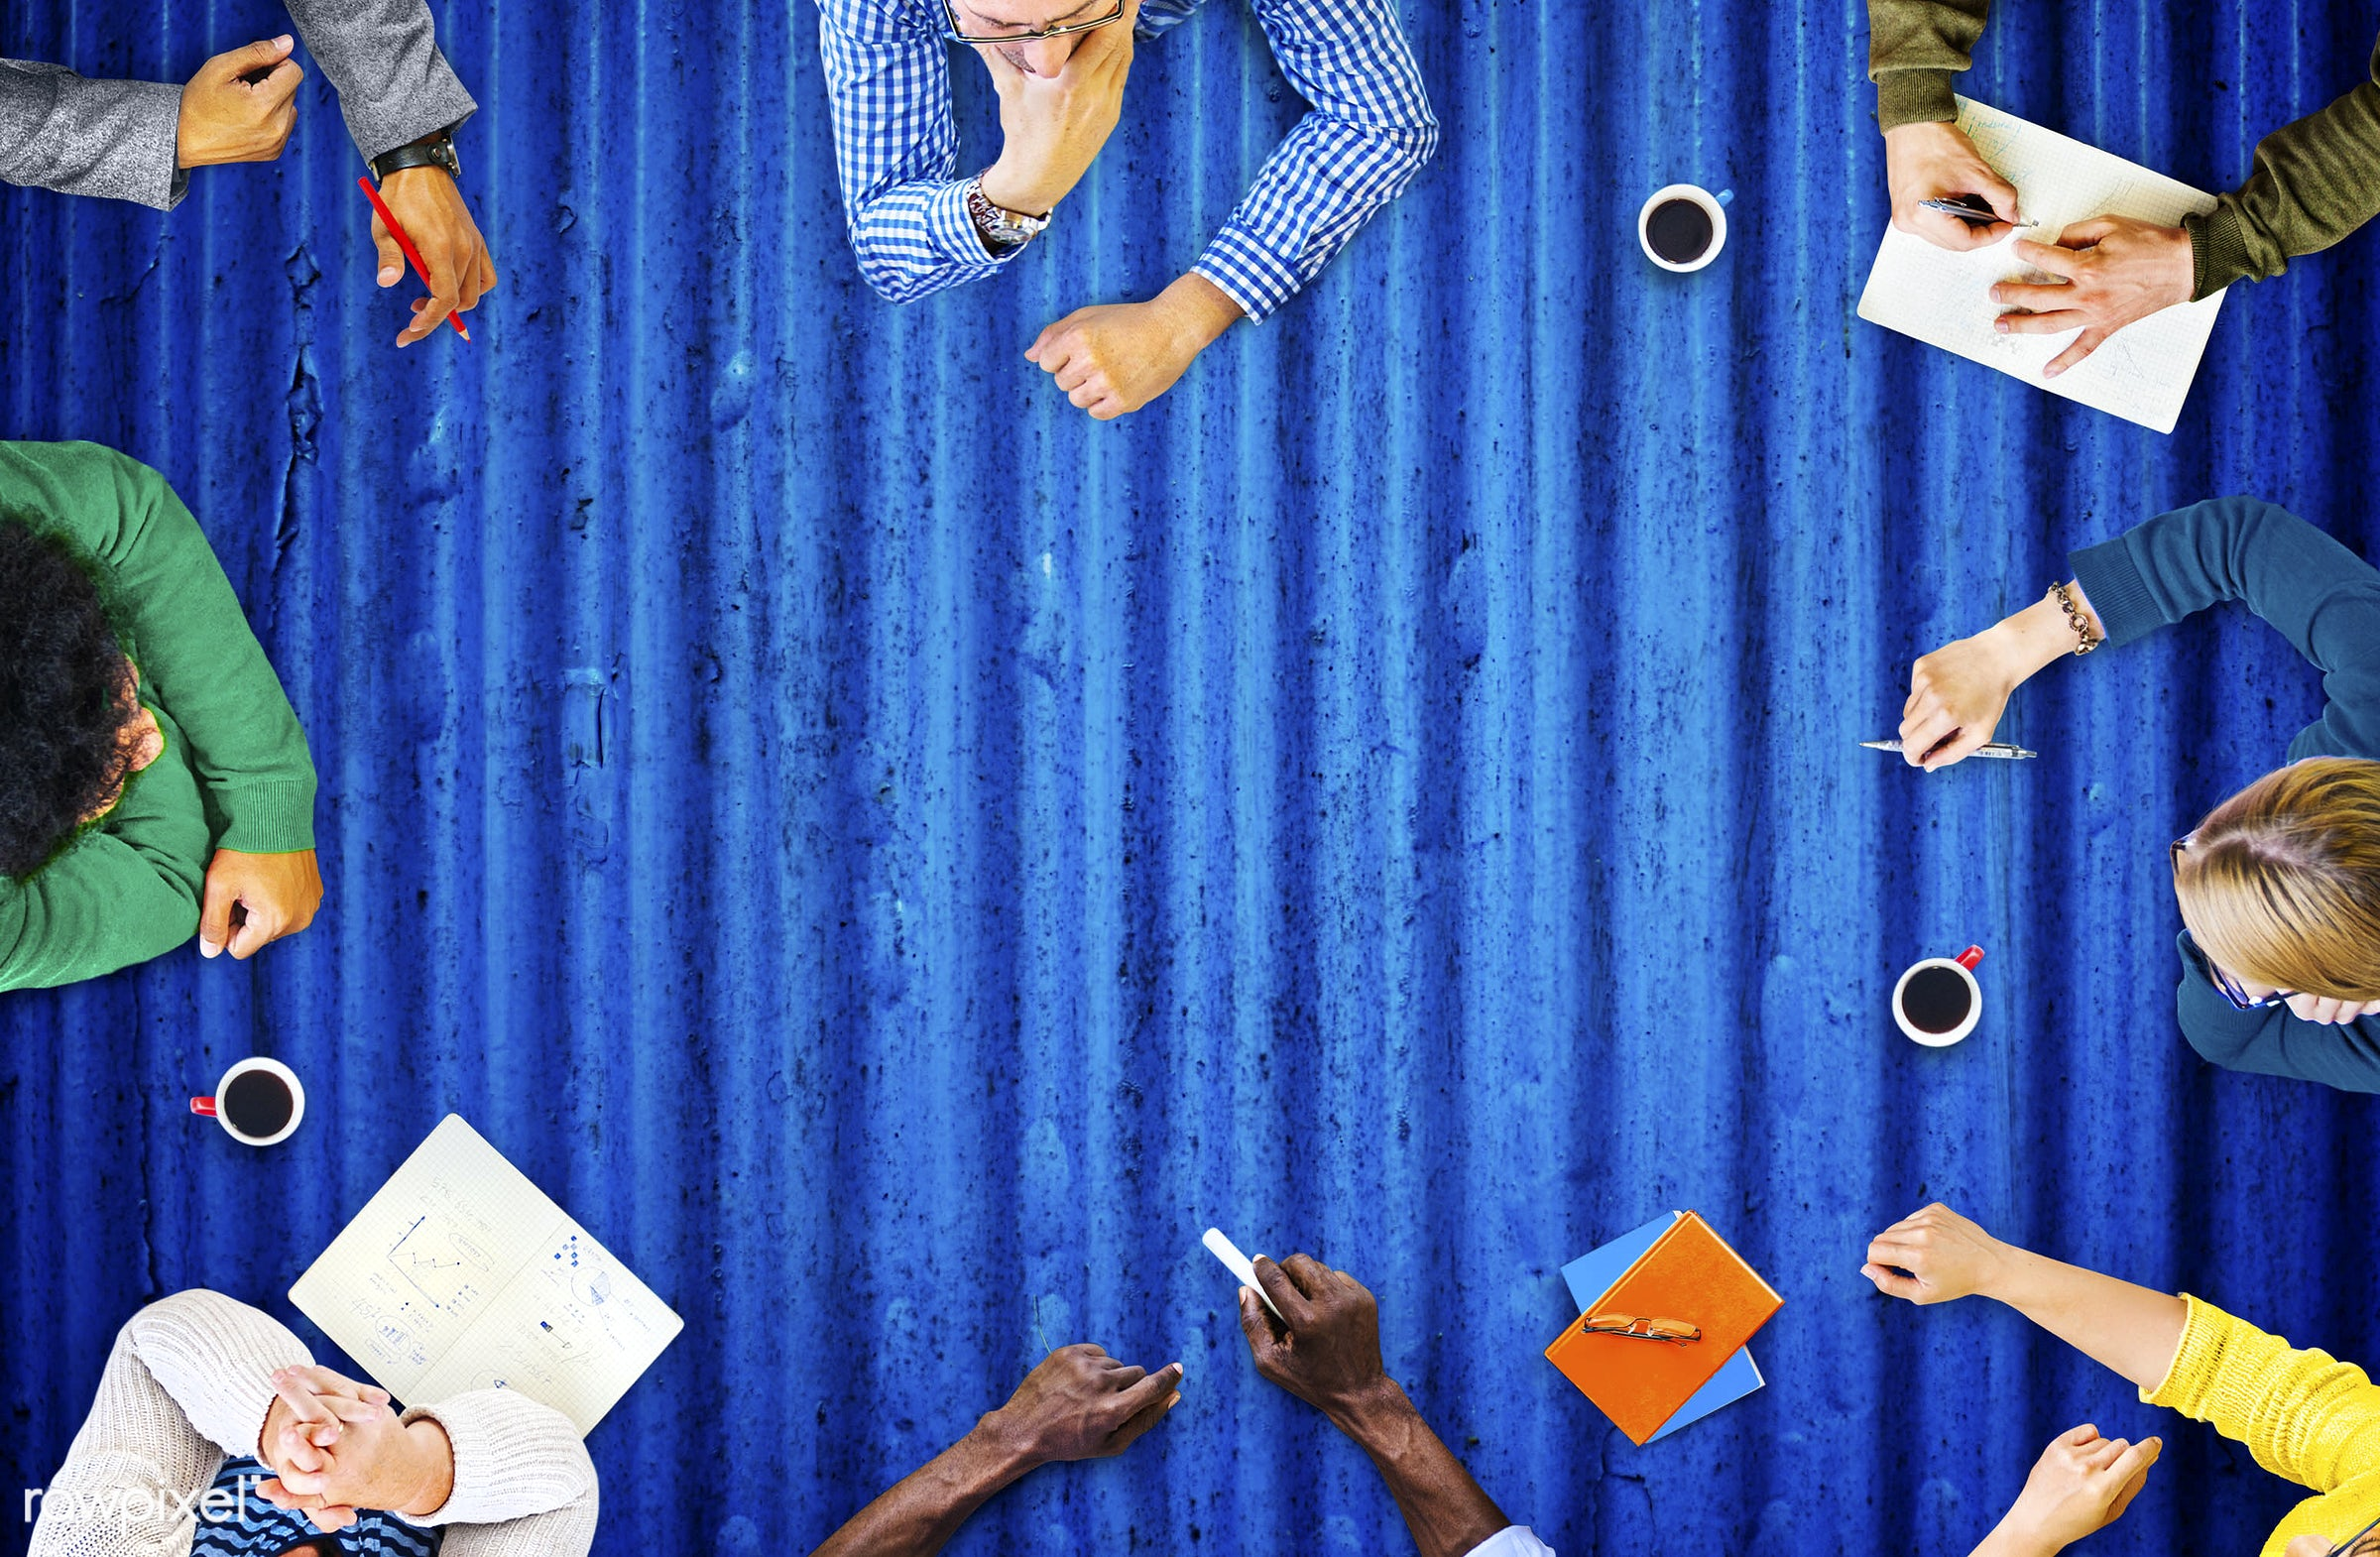 architecture, background, blue, brainstorming, business, classroom, college, communication, construction, corrugated,...